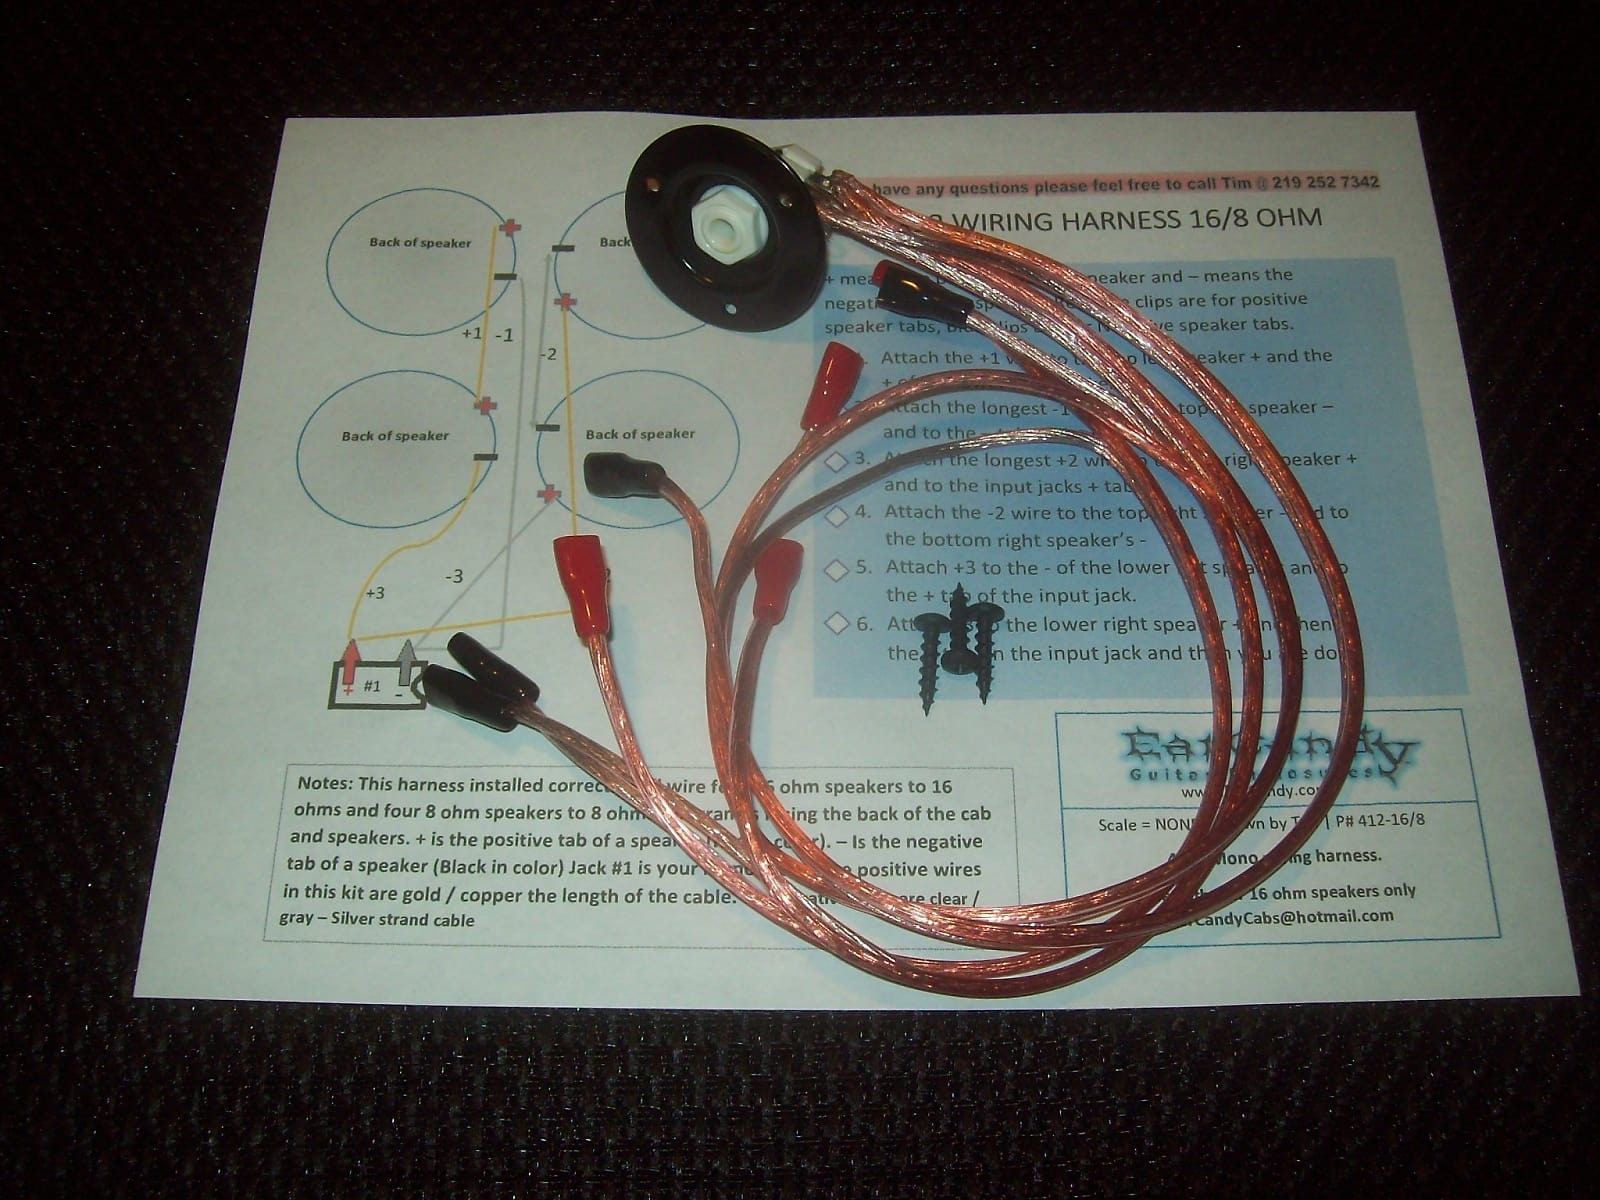 F 16 Wiring Harness - Wiring Diagrams Hewescraft Wiring Harness on